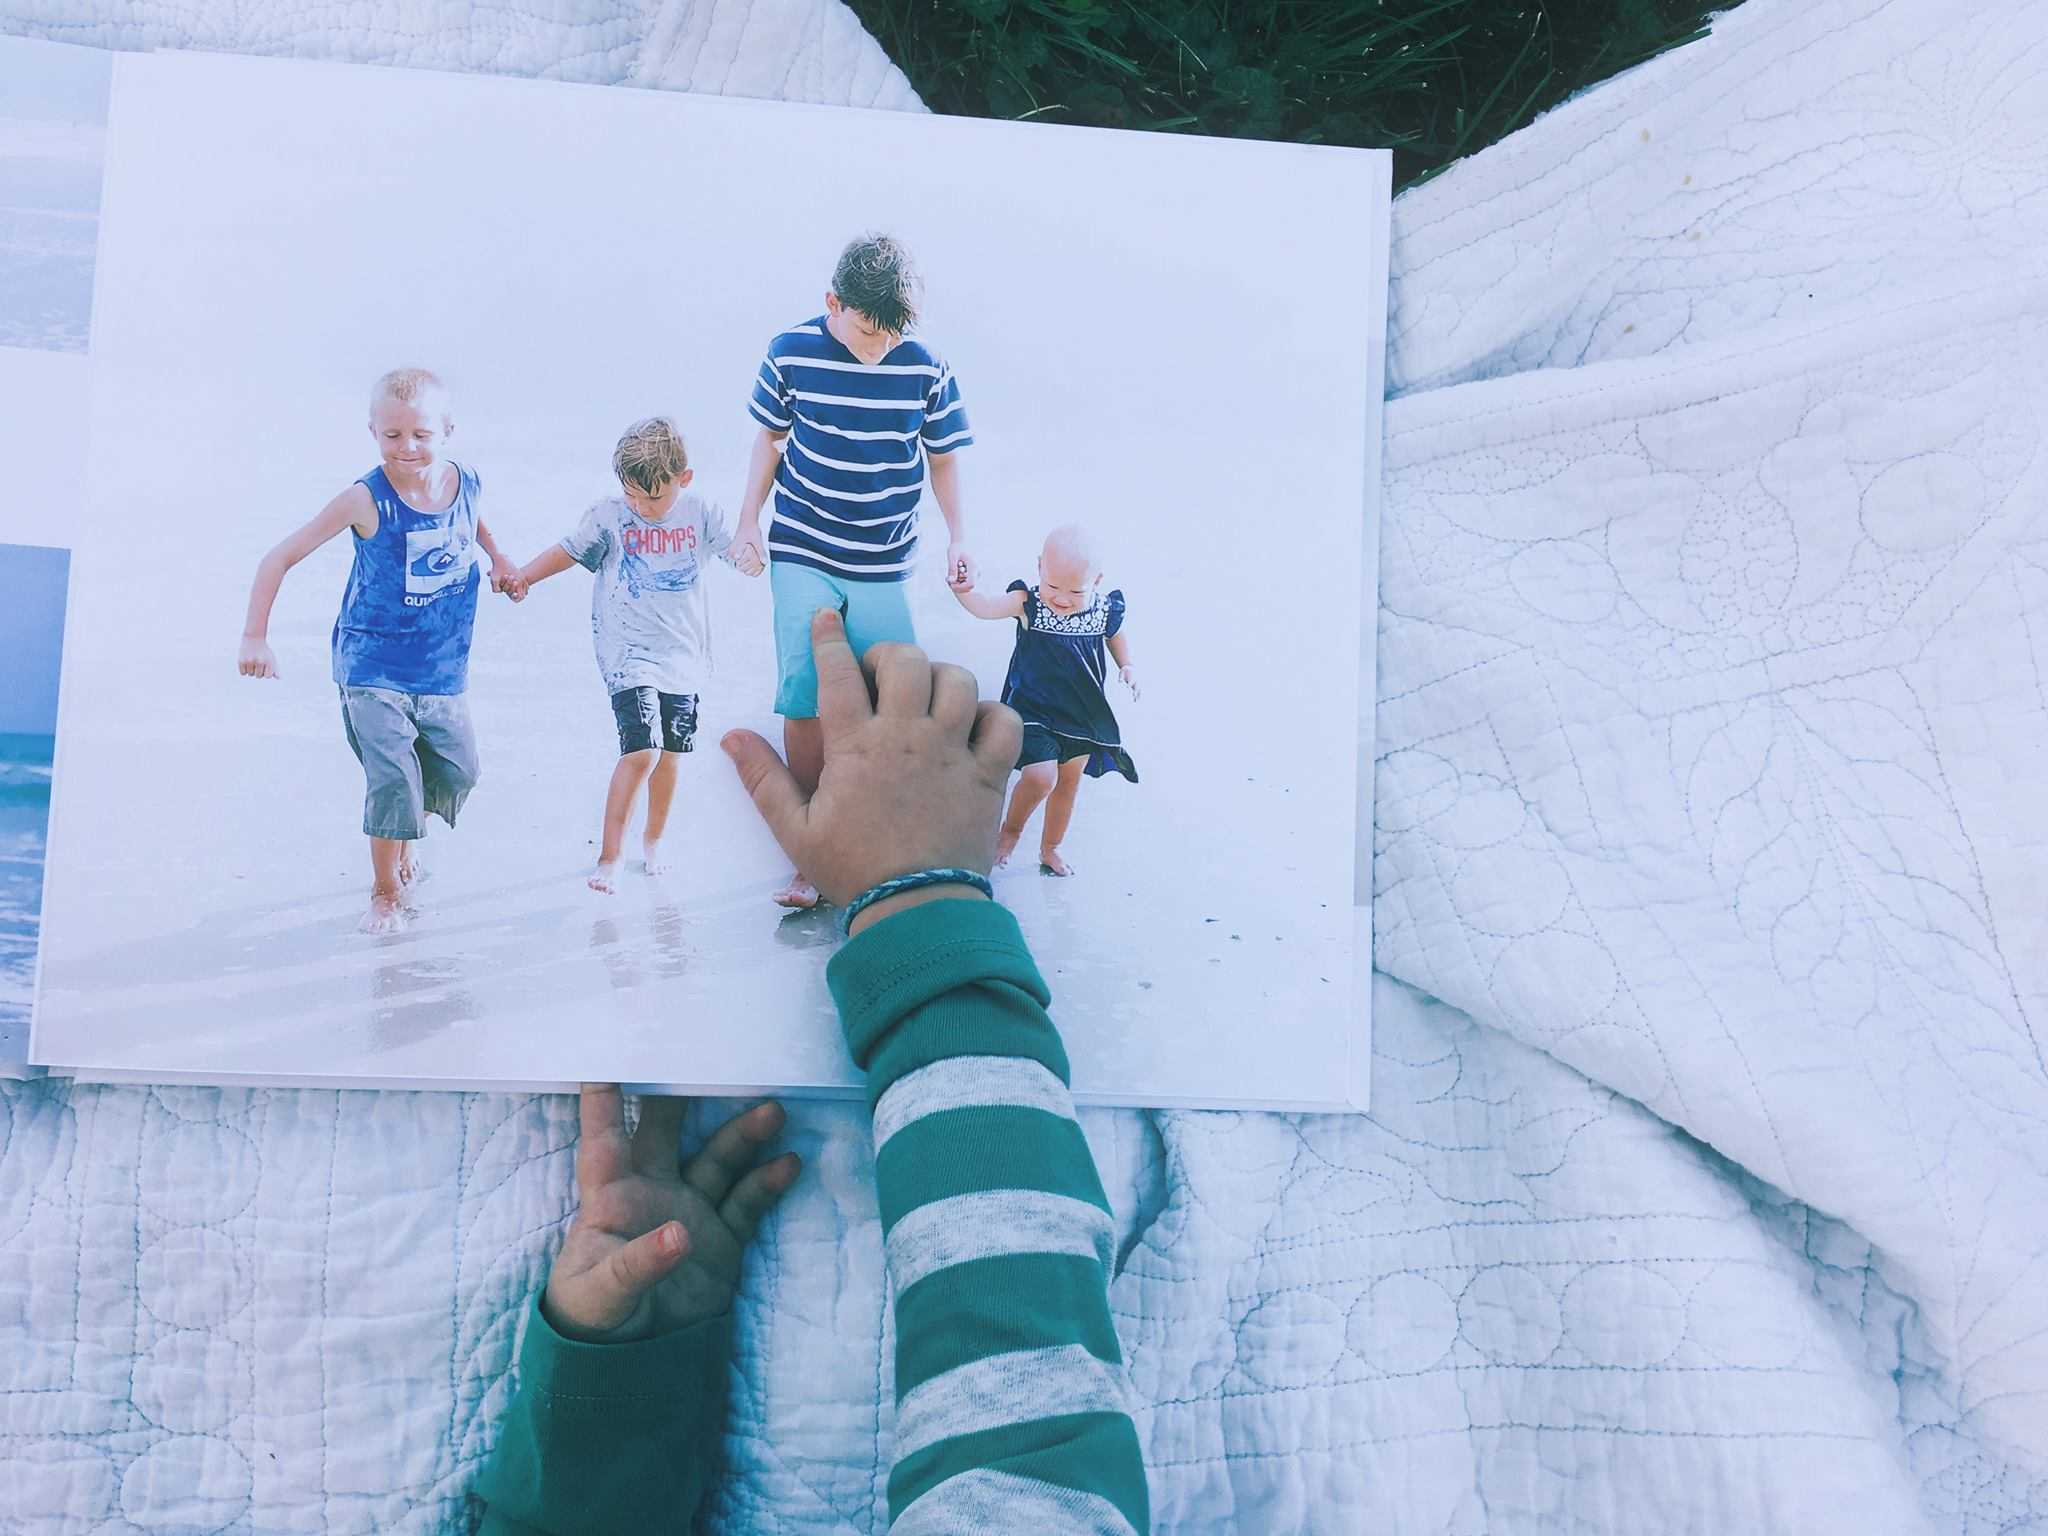 I can't believe how easy this photo album was to make. I am so happy to have my pictures printed in a book.